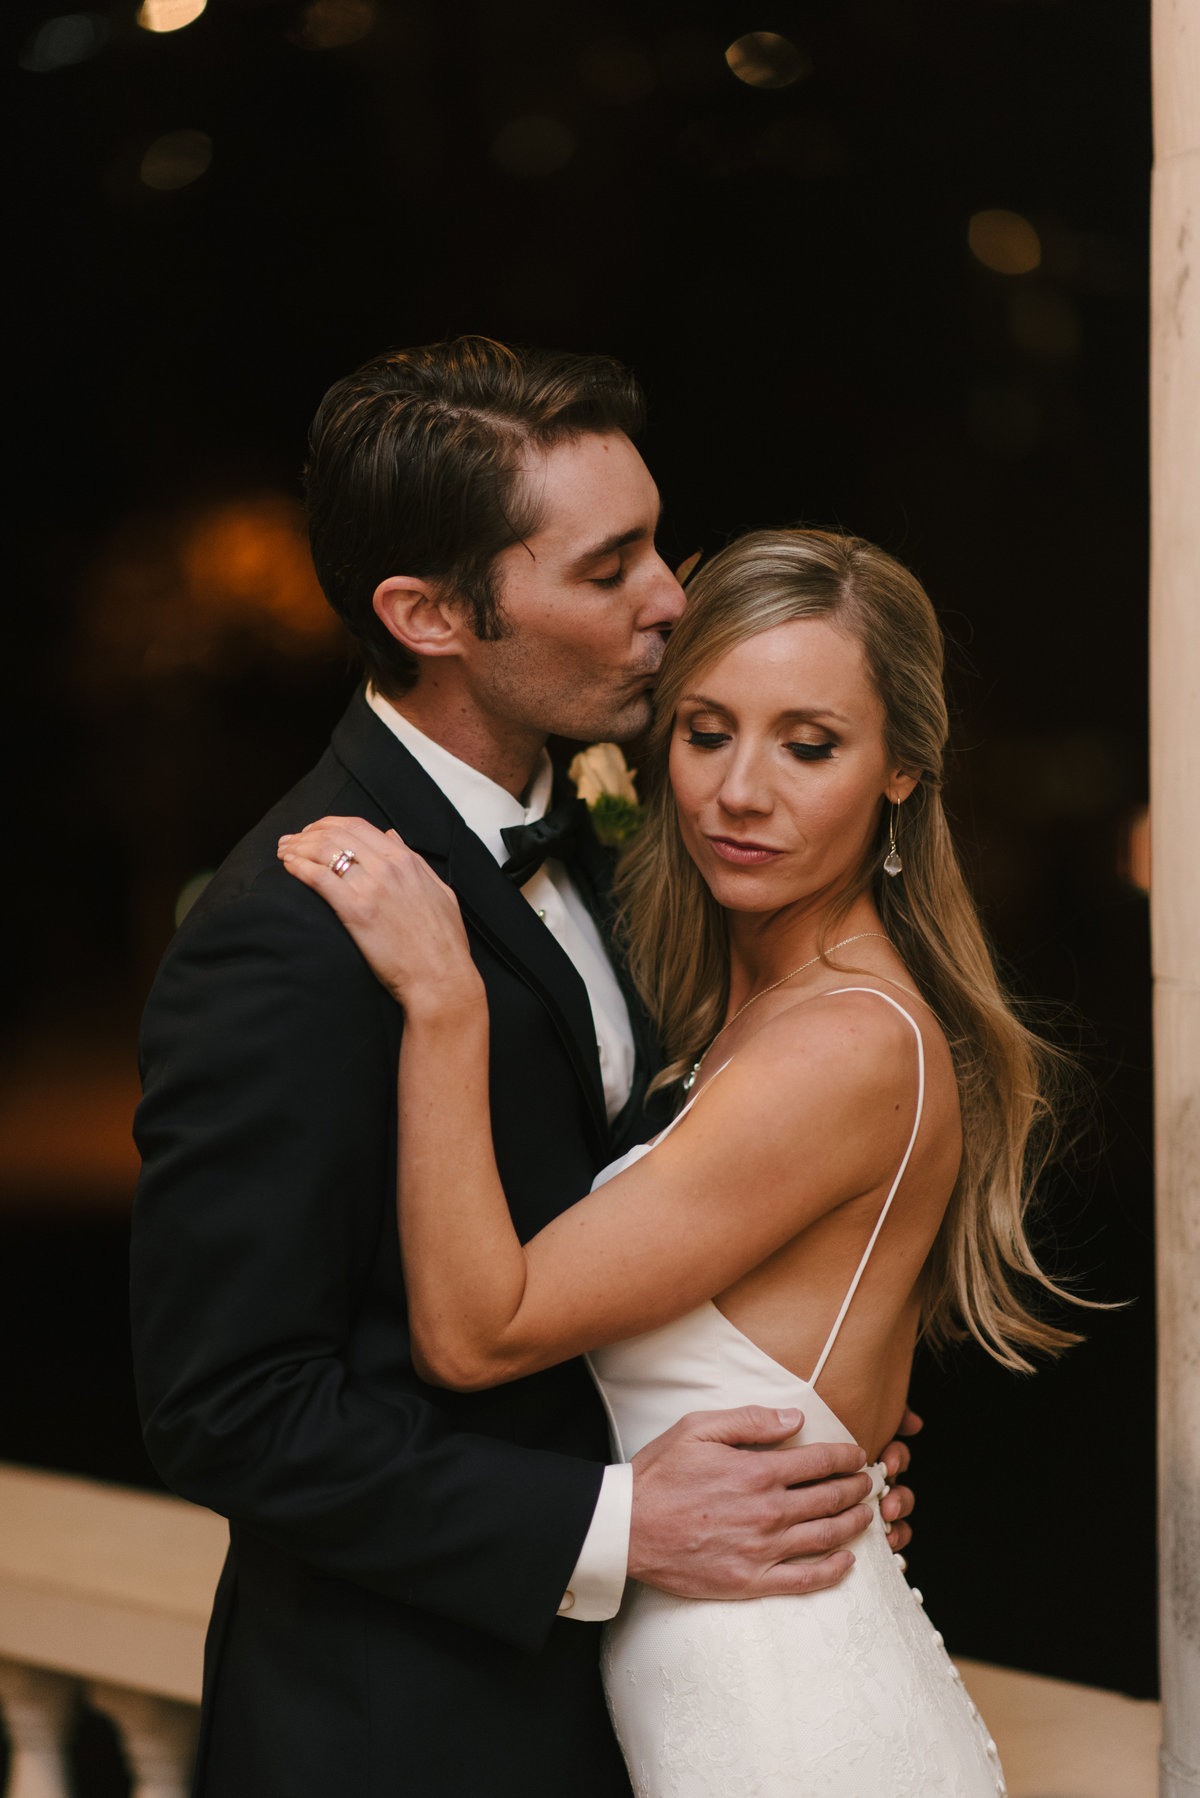 black tie wedding night portrait